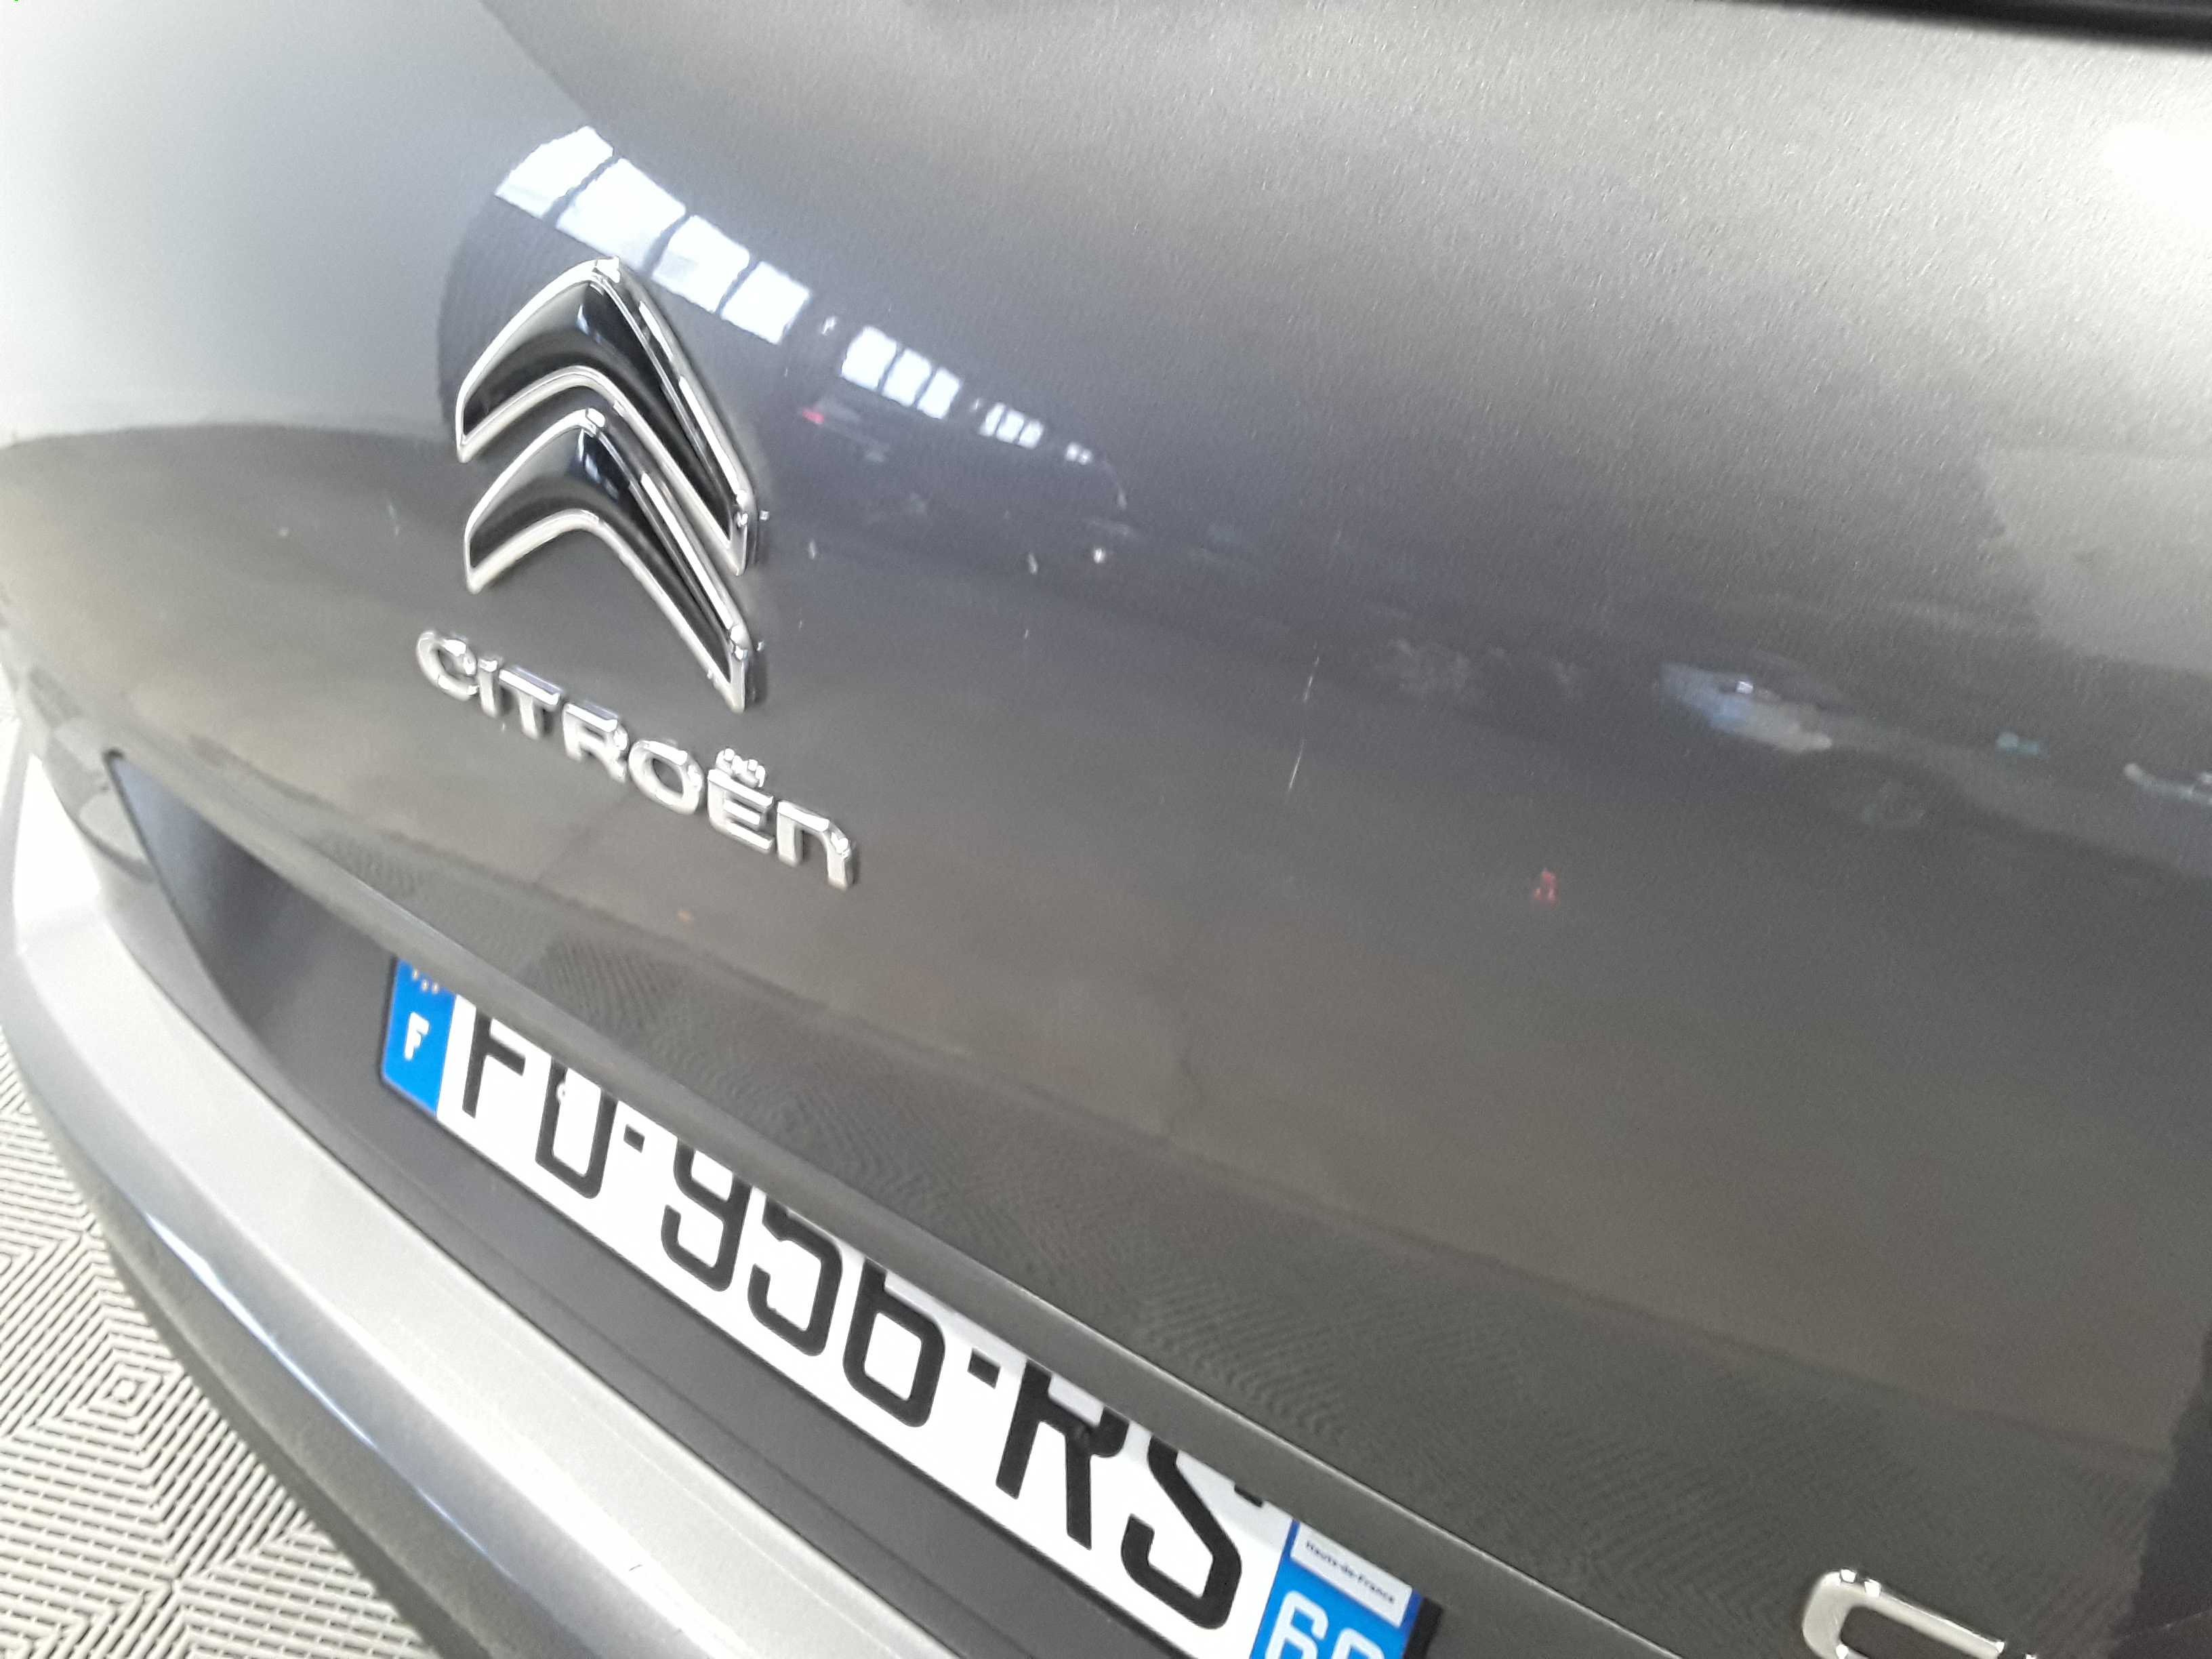 CITROEN GRAND C4 SPACETOURER 2019 - Photo n°13